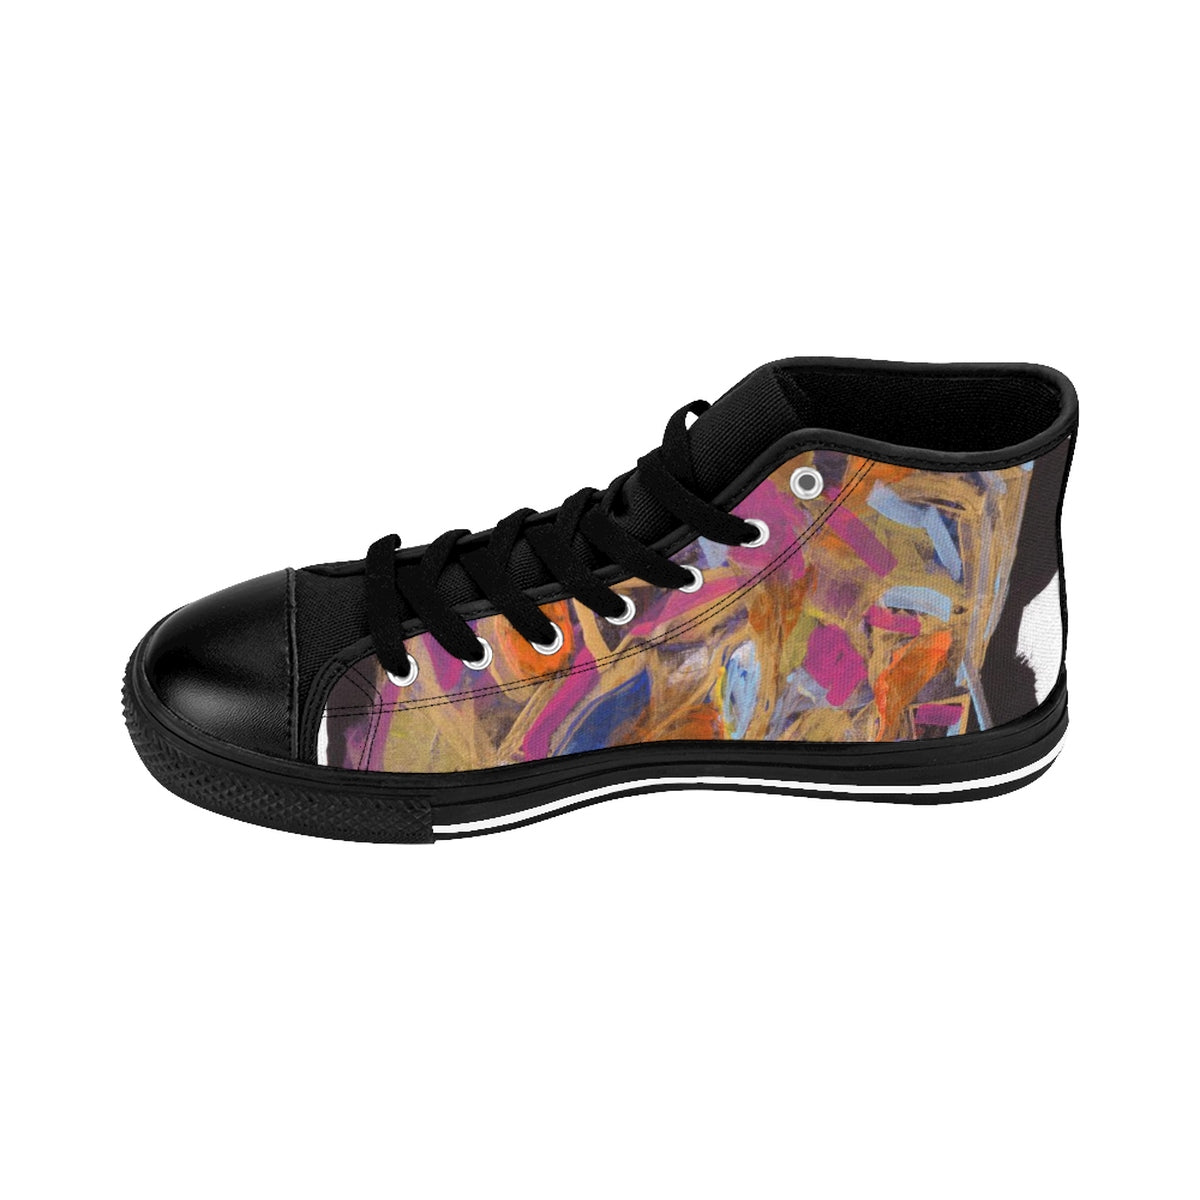 PHOENIX FROM ASHES Men's High-top Sneakers  SIZES  6- 14